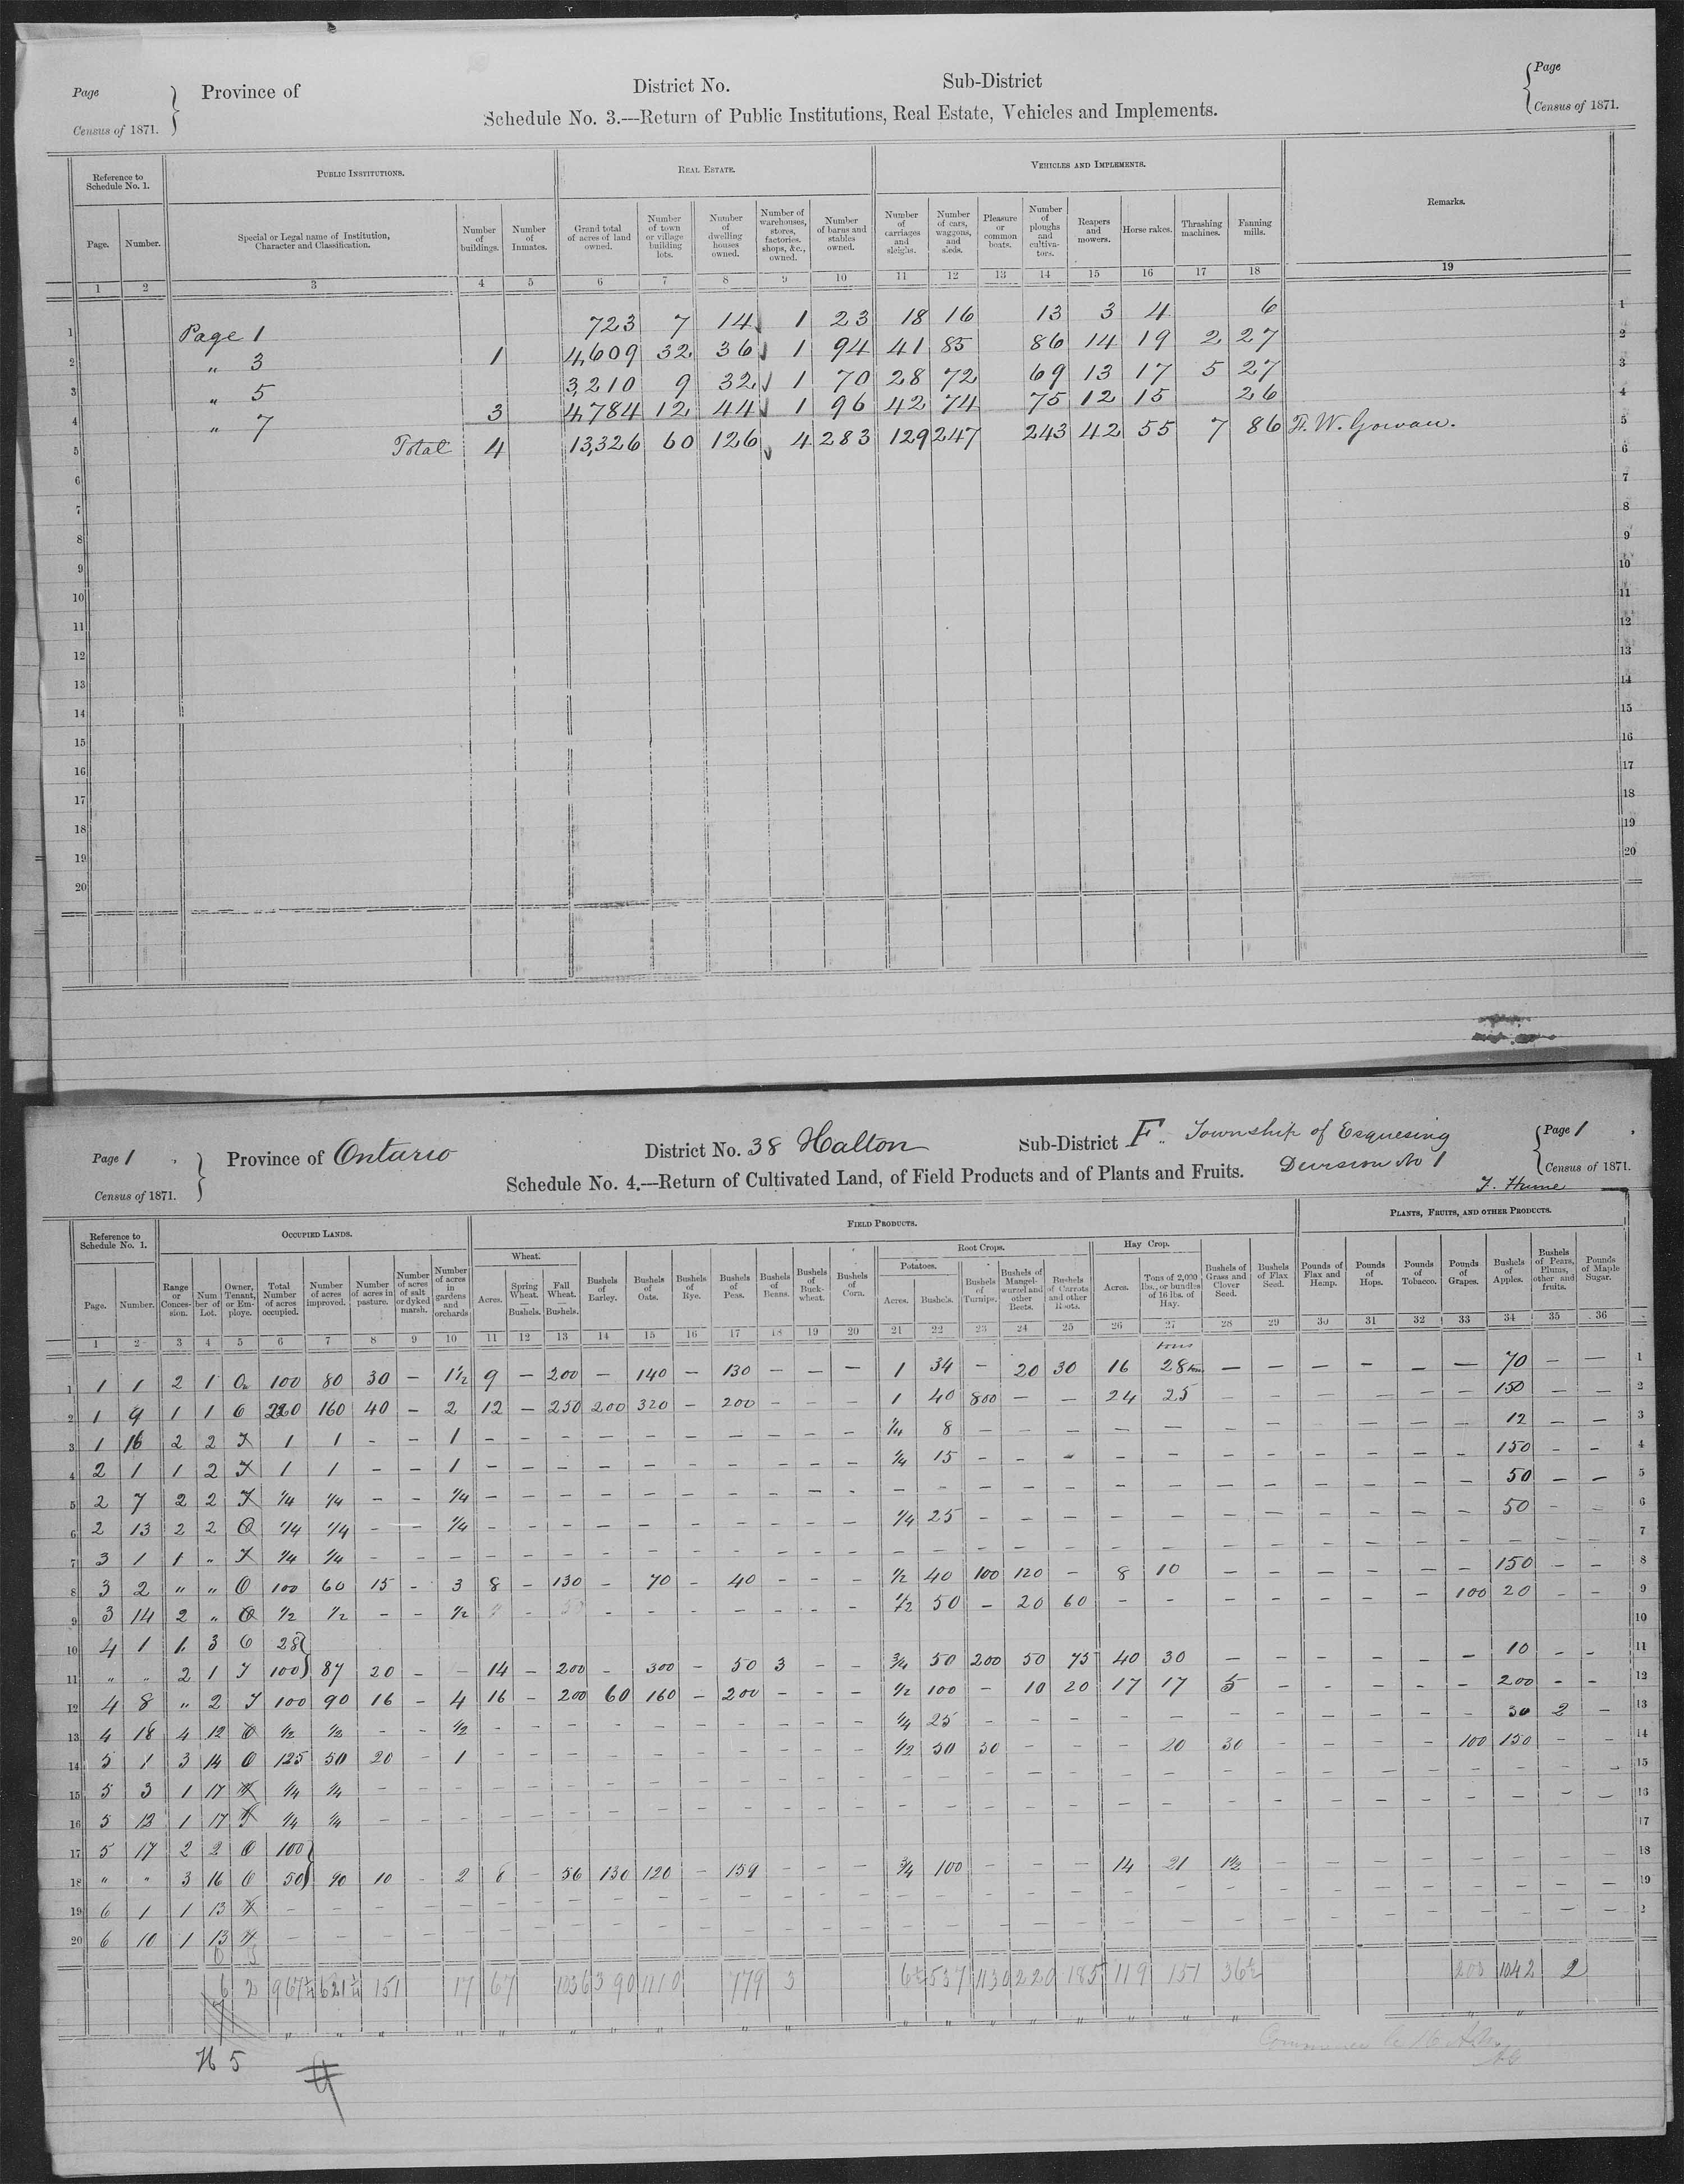 Title: Census of Canada, 1871 - Mikan Number: 142105 - Microform: c-9956